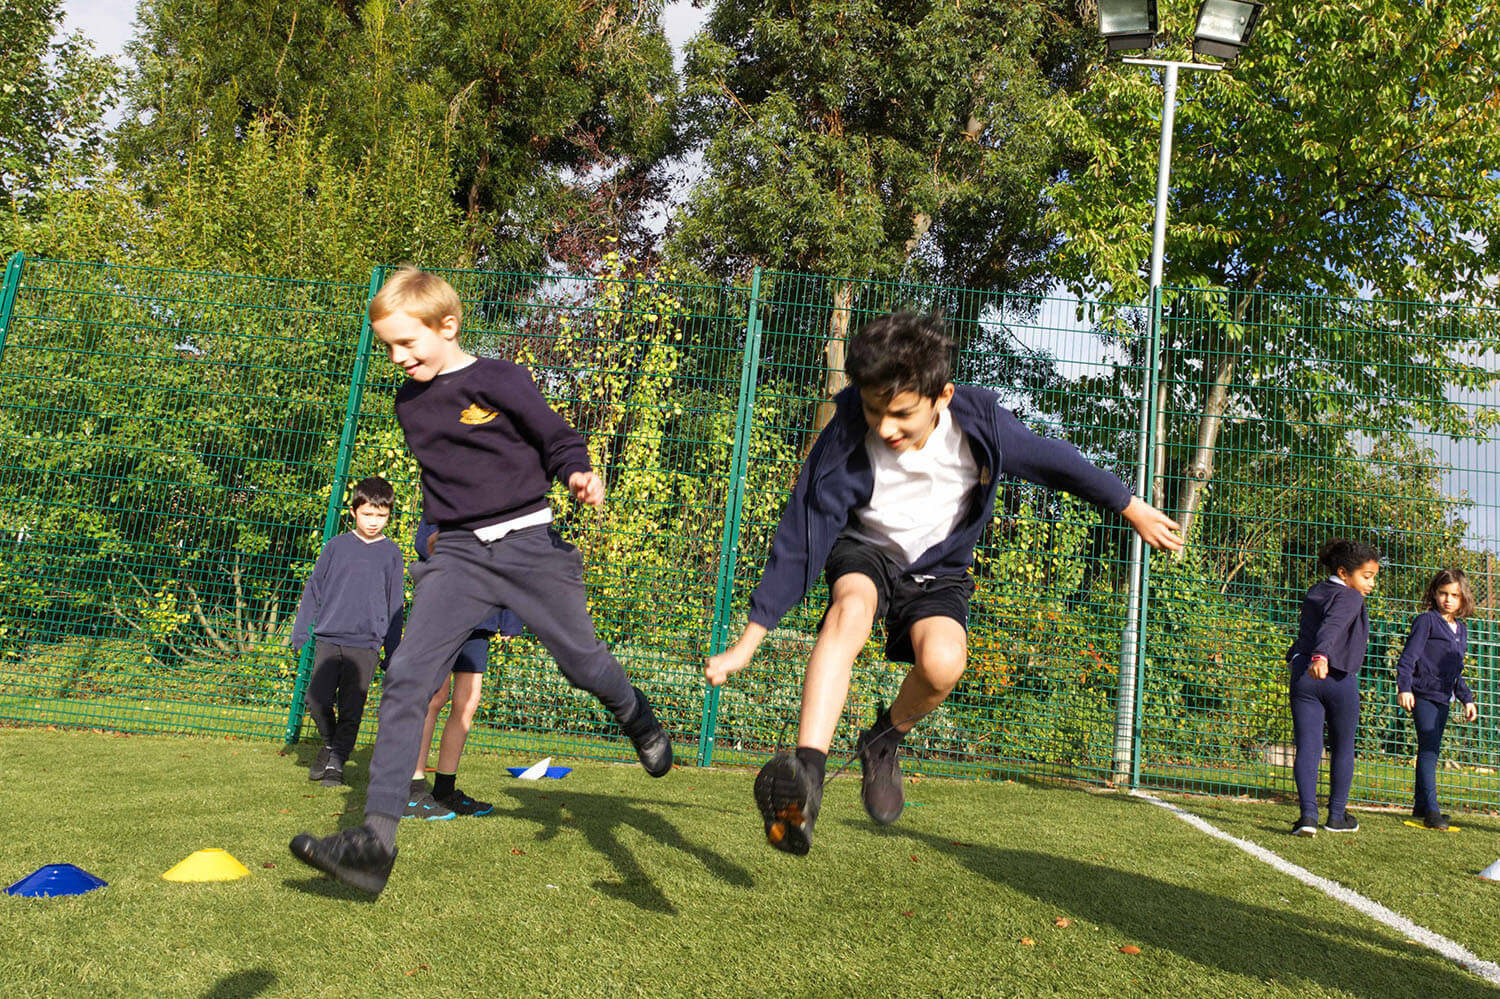 School boys in PE lesson jumping in air on the astro turf